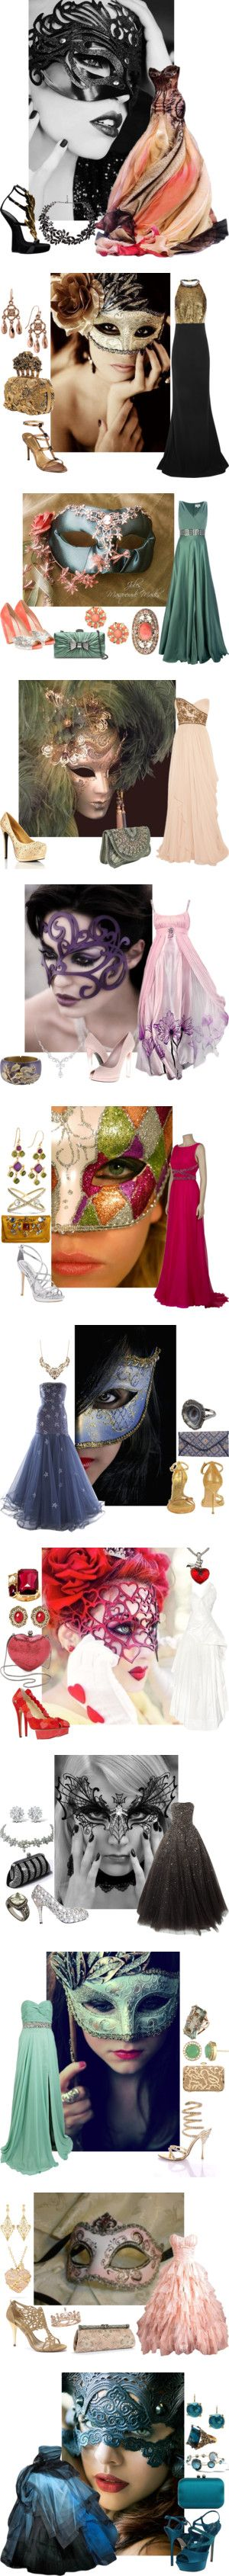 Masquerade Ball by eclare887 on Polyvore featuring Masquerade, Alexander McQueen, Giuseppe Zanotti, Tom Binns, Nina Armando, 1928, Temperley London, Banana Republic, Philosophy di Alberta Ferretti and Marchesa